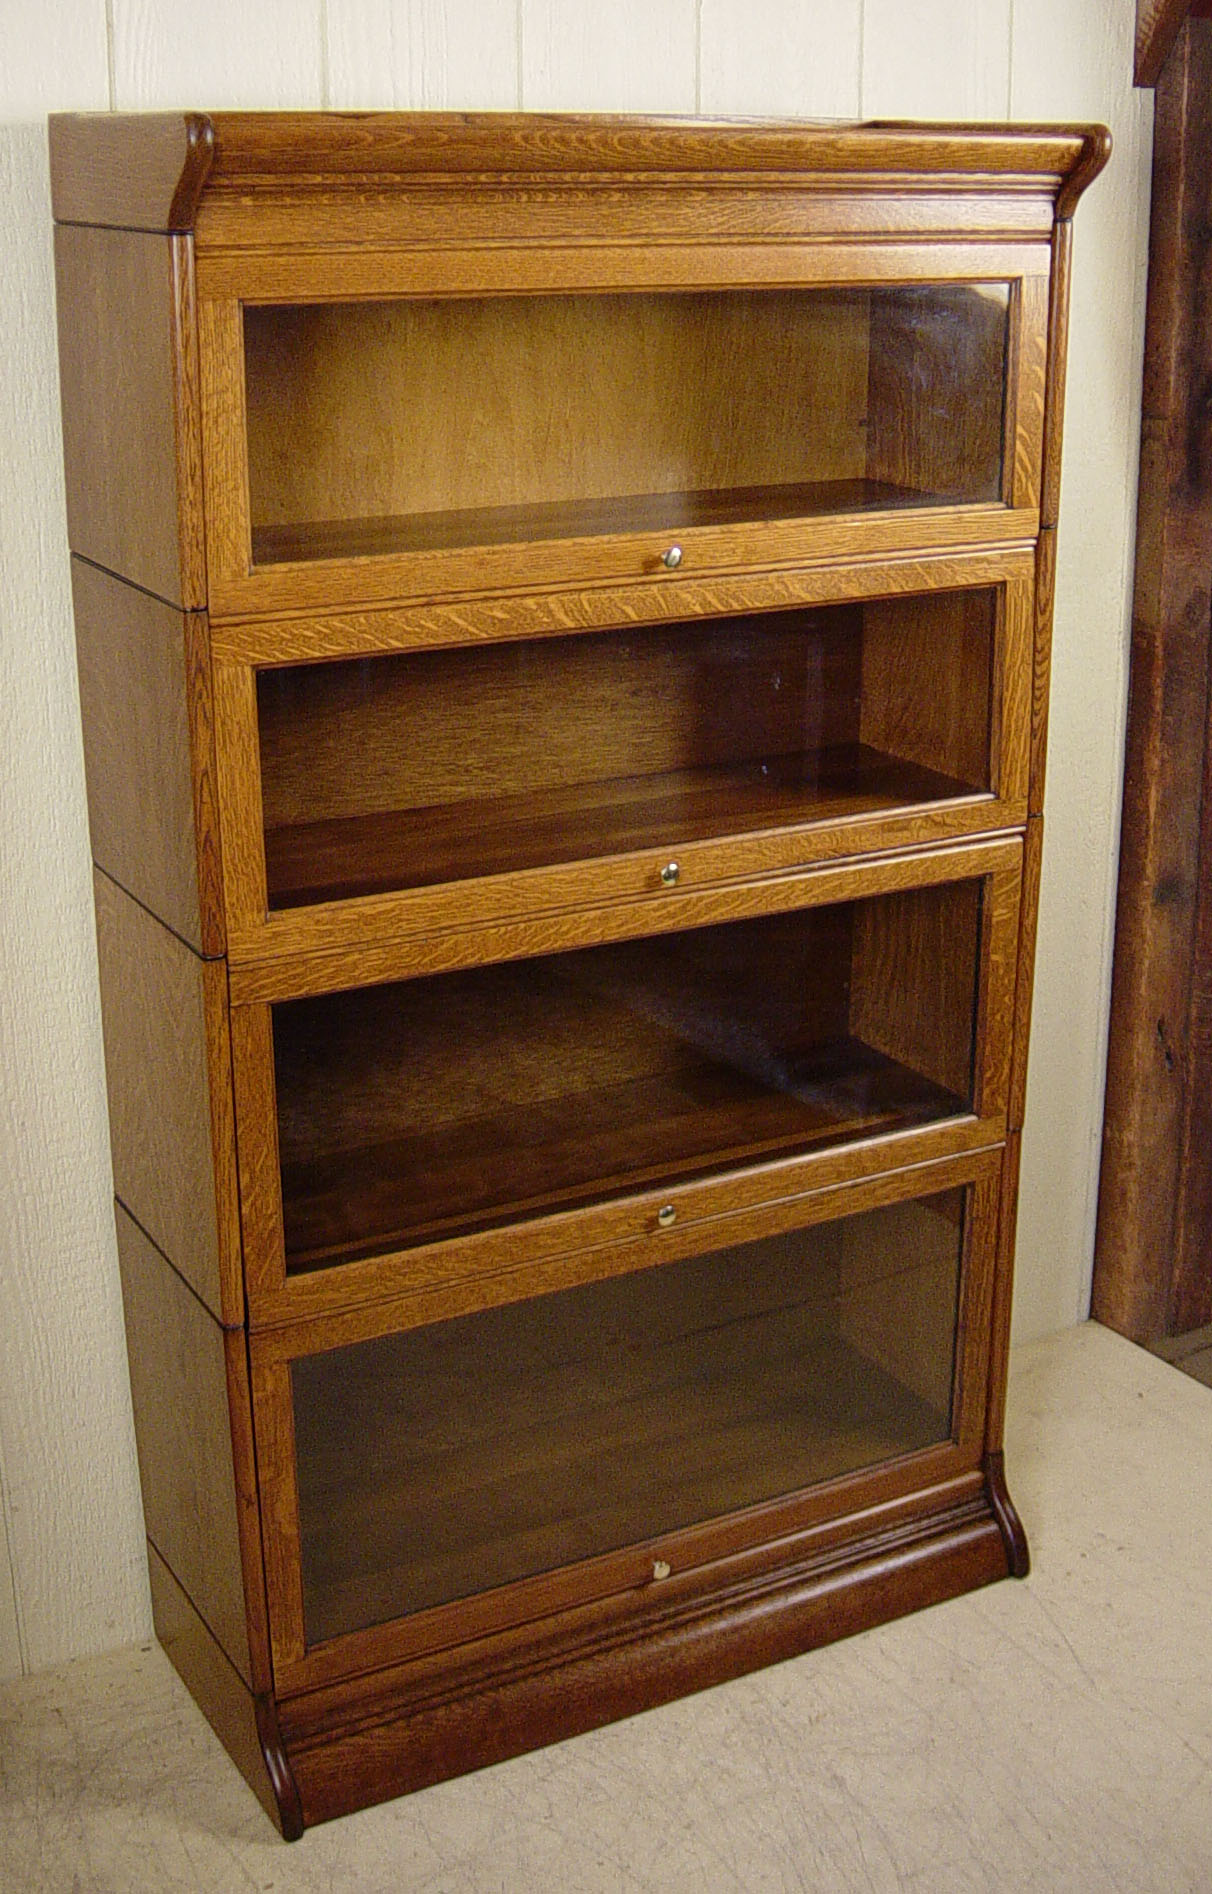 pin in barrister kitchen the home bookcase pinterest